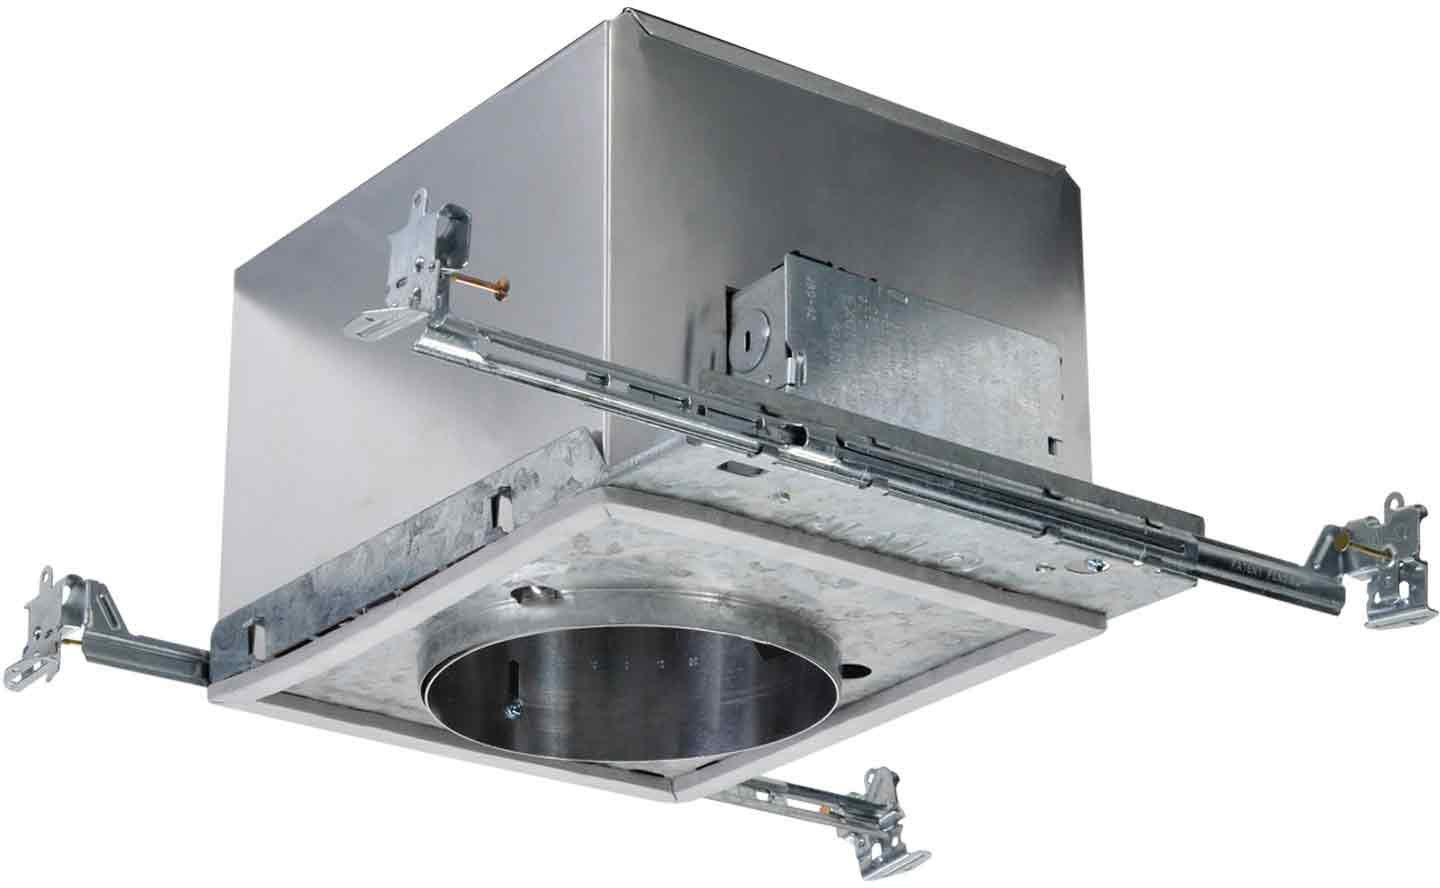 Halo Recessed H280ELICAT 120-Volt to 277-Volt 6-Inch Housing Compact Fluorescent IC Air-Tite 18-Watt Electronic HPF Ballast Lamp Included